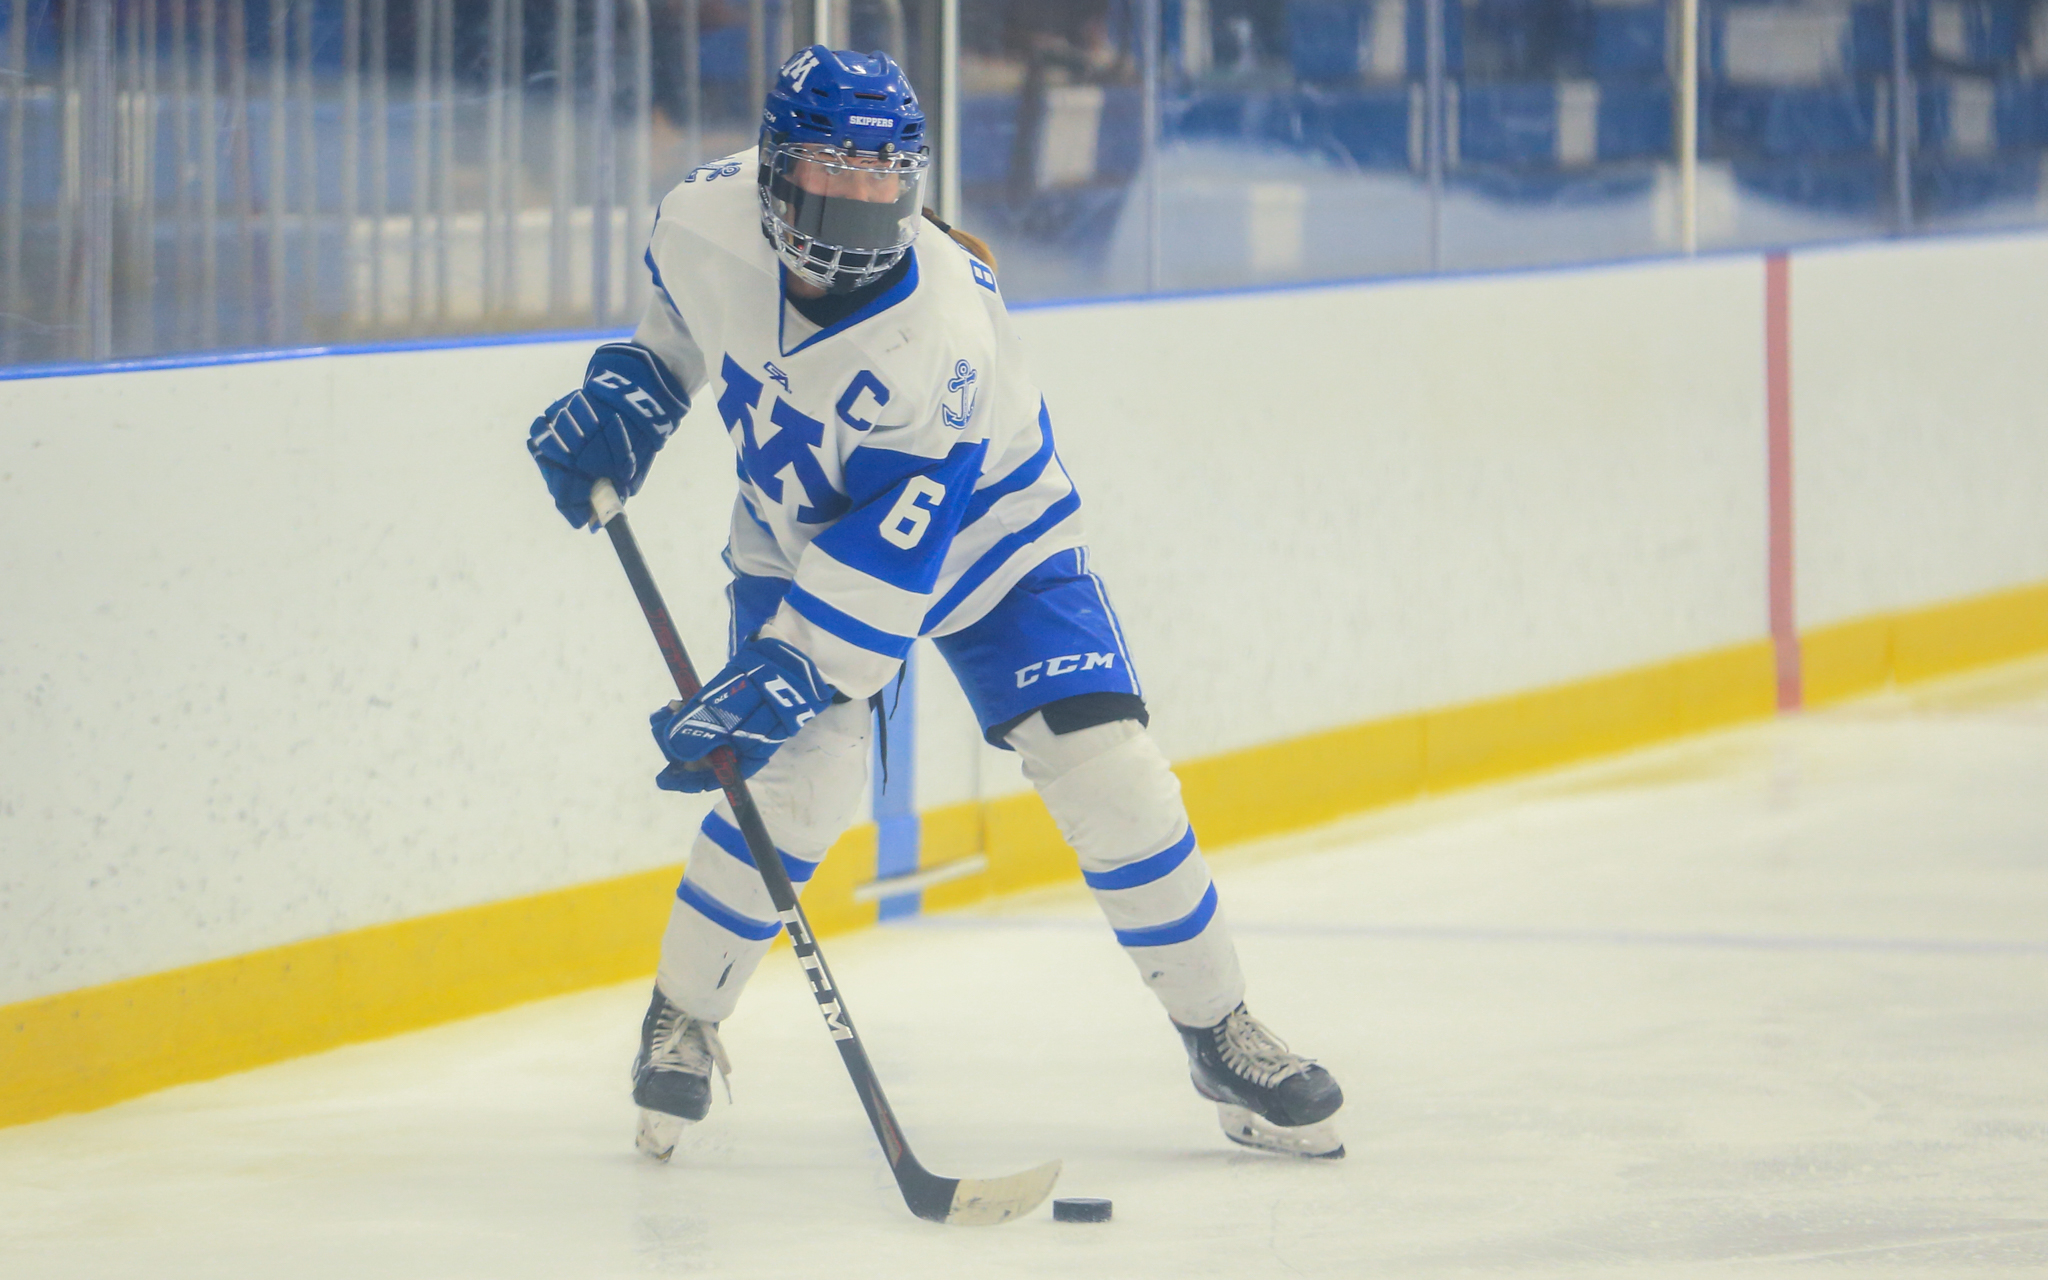 Minnetonka's Hanna Baskin (6) looks for a passing lane during a Skippers' power play against Holy Family Catholic Saturday. Baskin opened the scoring in the Skippers' 4-1 victory over the Fire. Photo by Jeff Lawler, SportsEngine